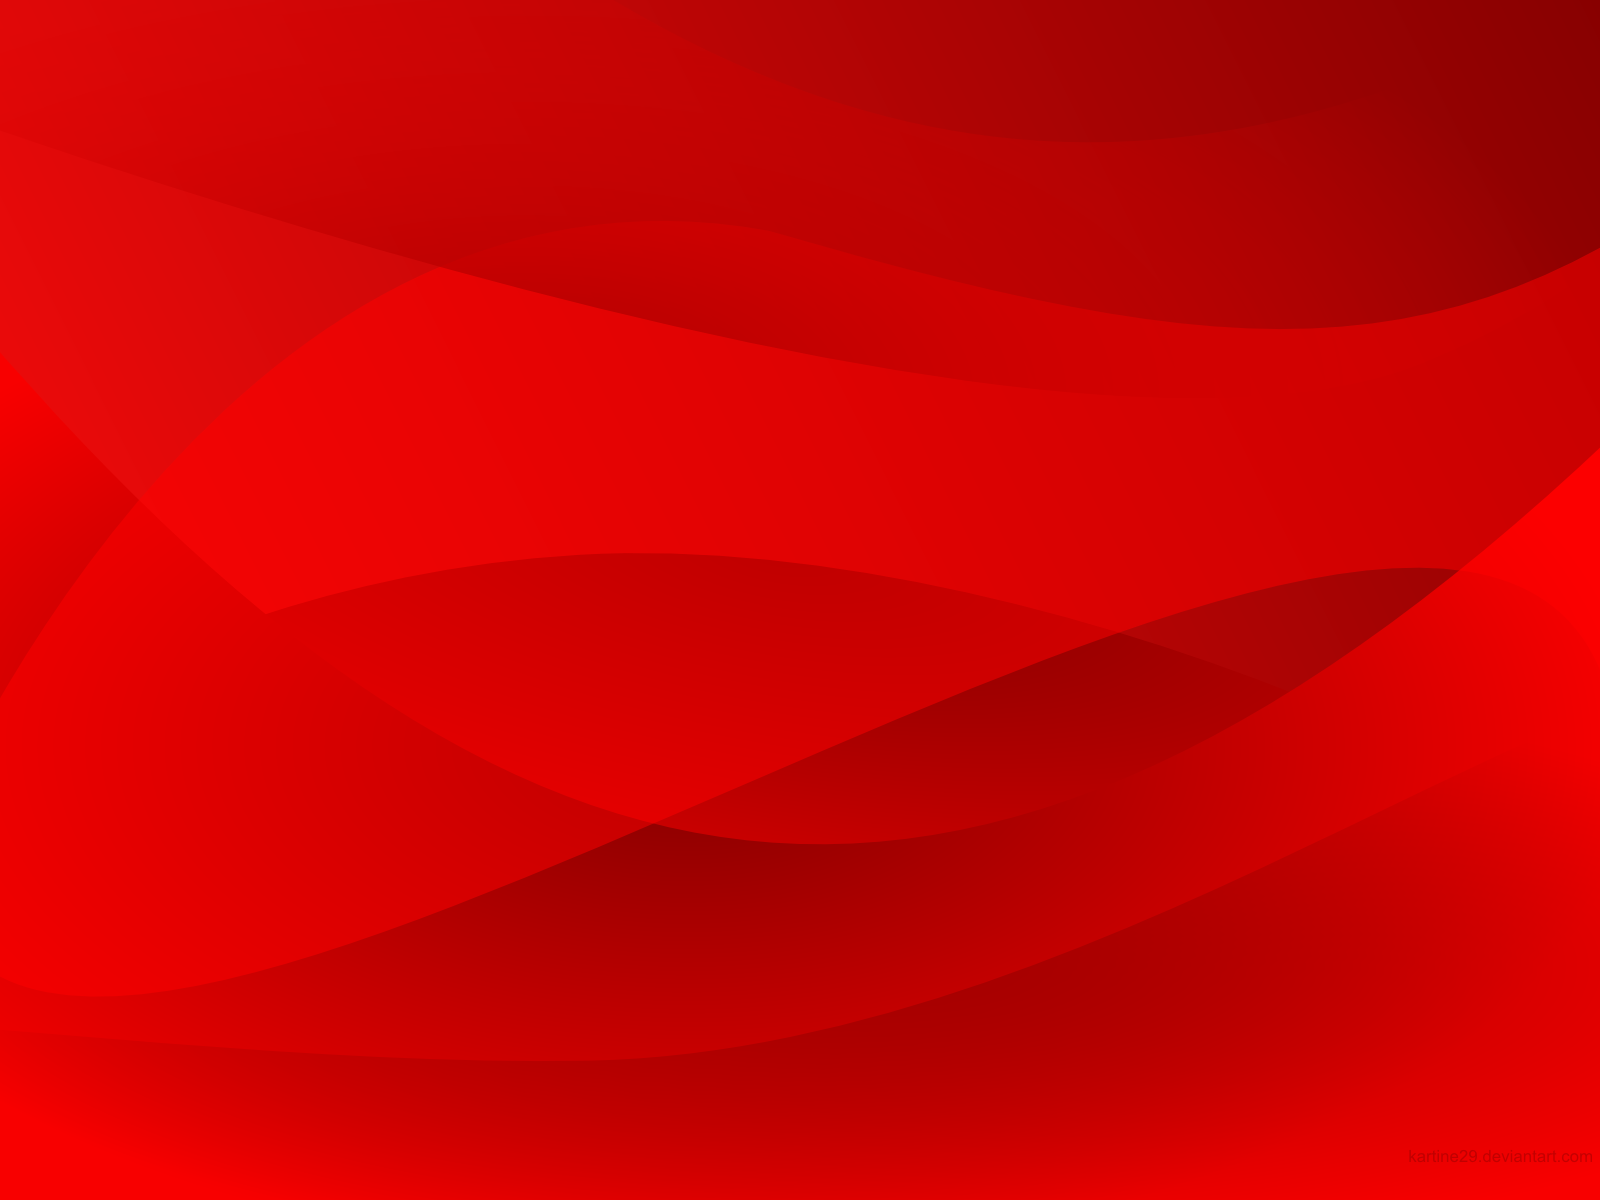 Wallpaper Red Abstract